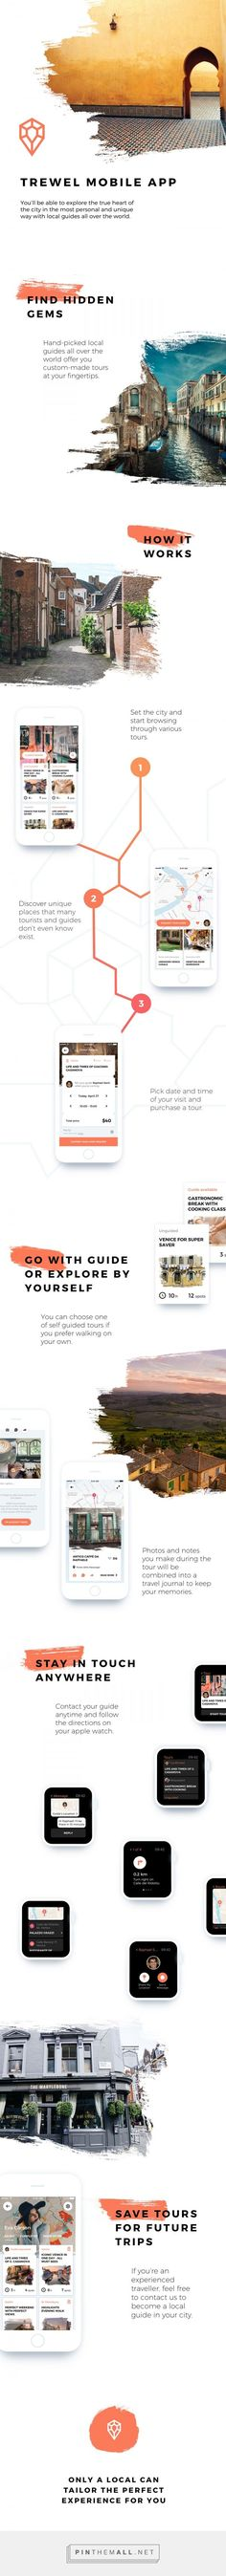 Trewel. Mobile app for travelers and local guides on Behance - created via…